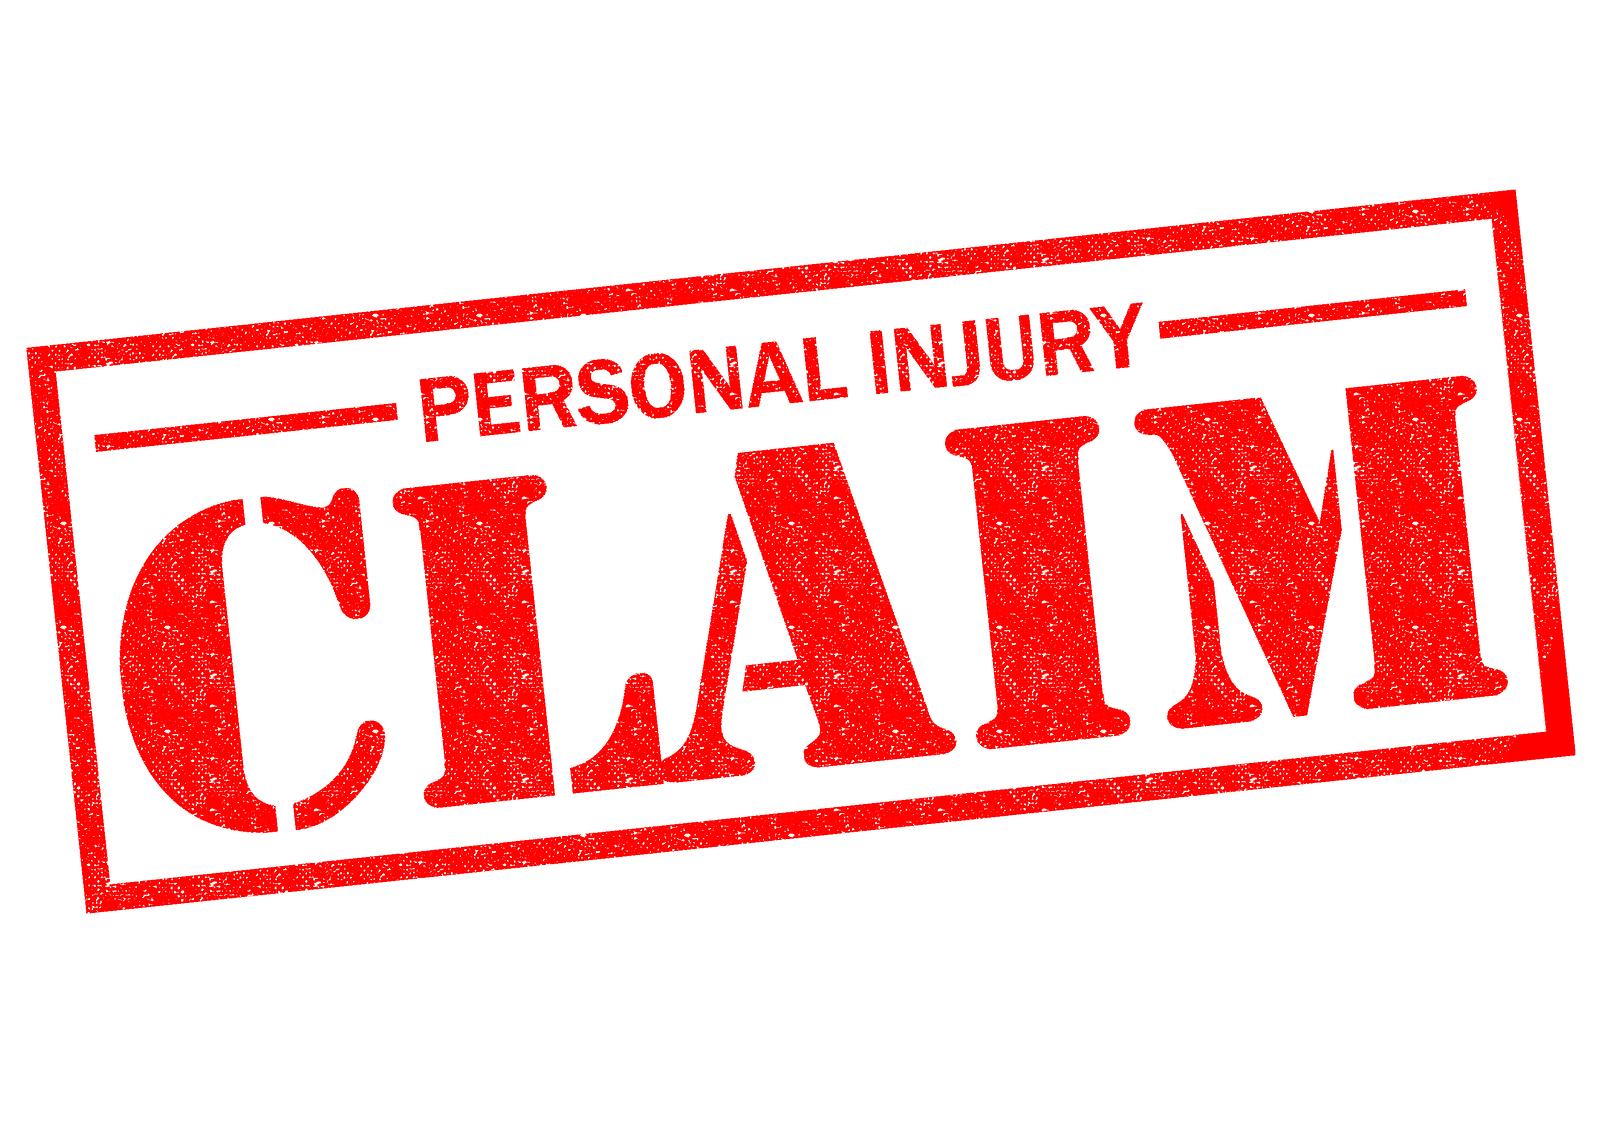 Why Choose Bowser Law for your Personal Injury Claim